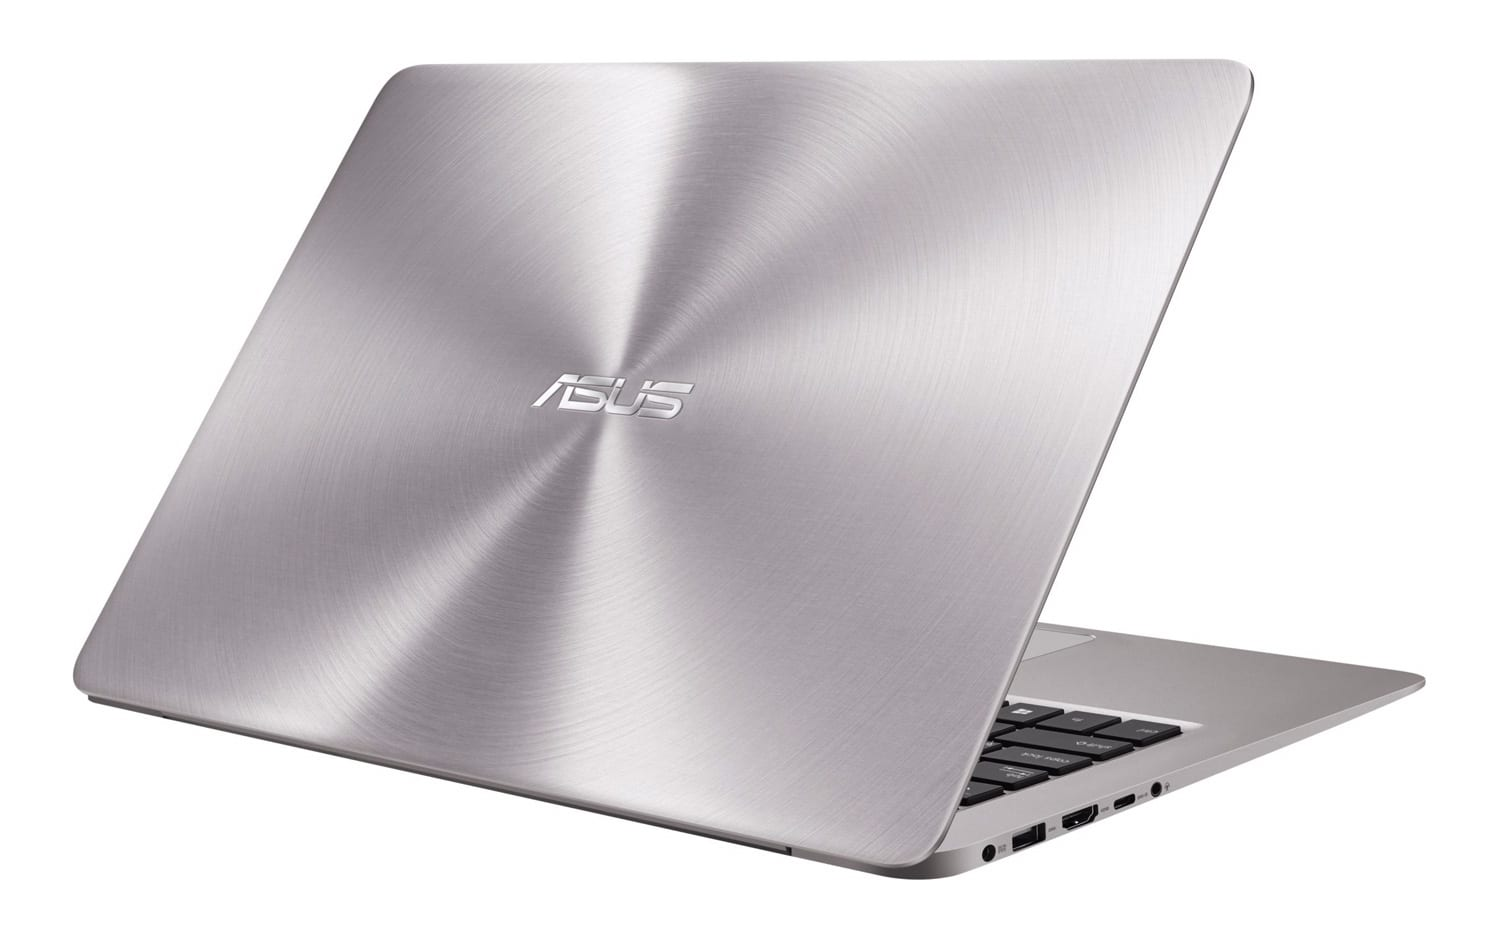 Asus Zenbook UX410UA-GV270T, ultrabook 14 pouces IPS i3 Kaby SSD promo 595€